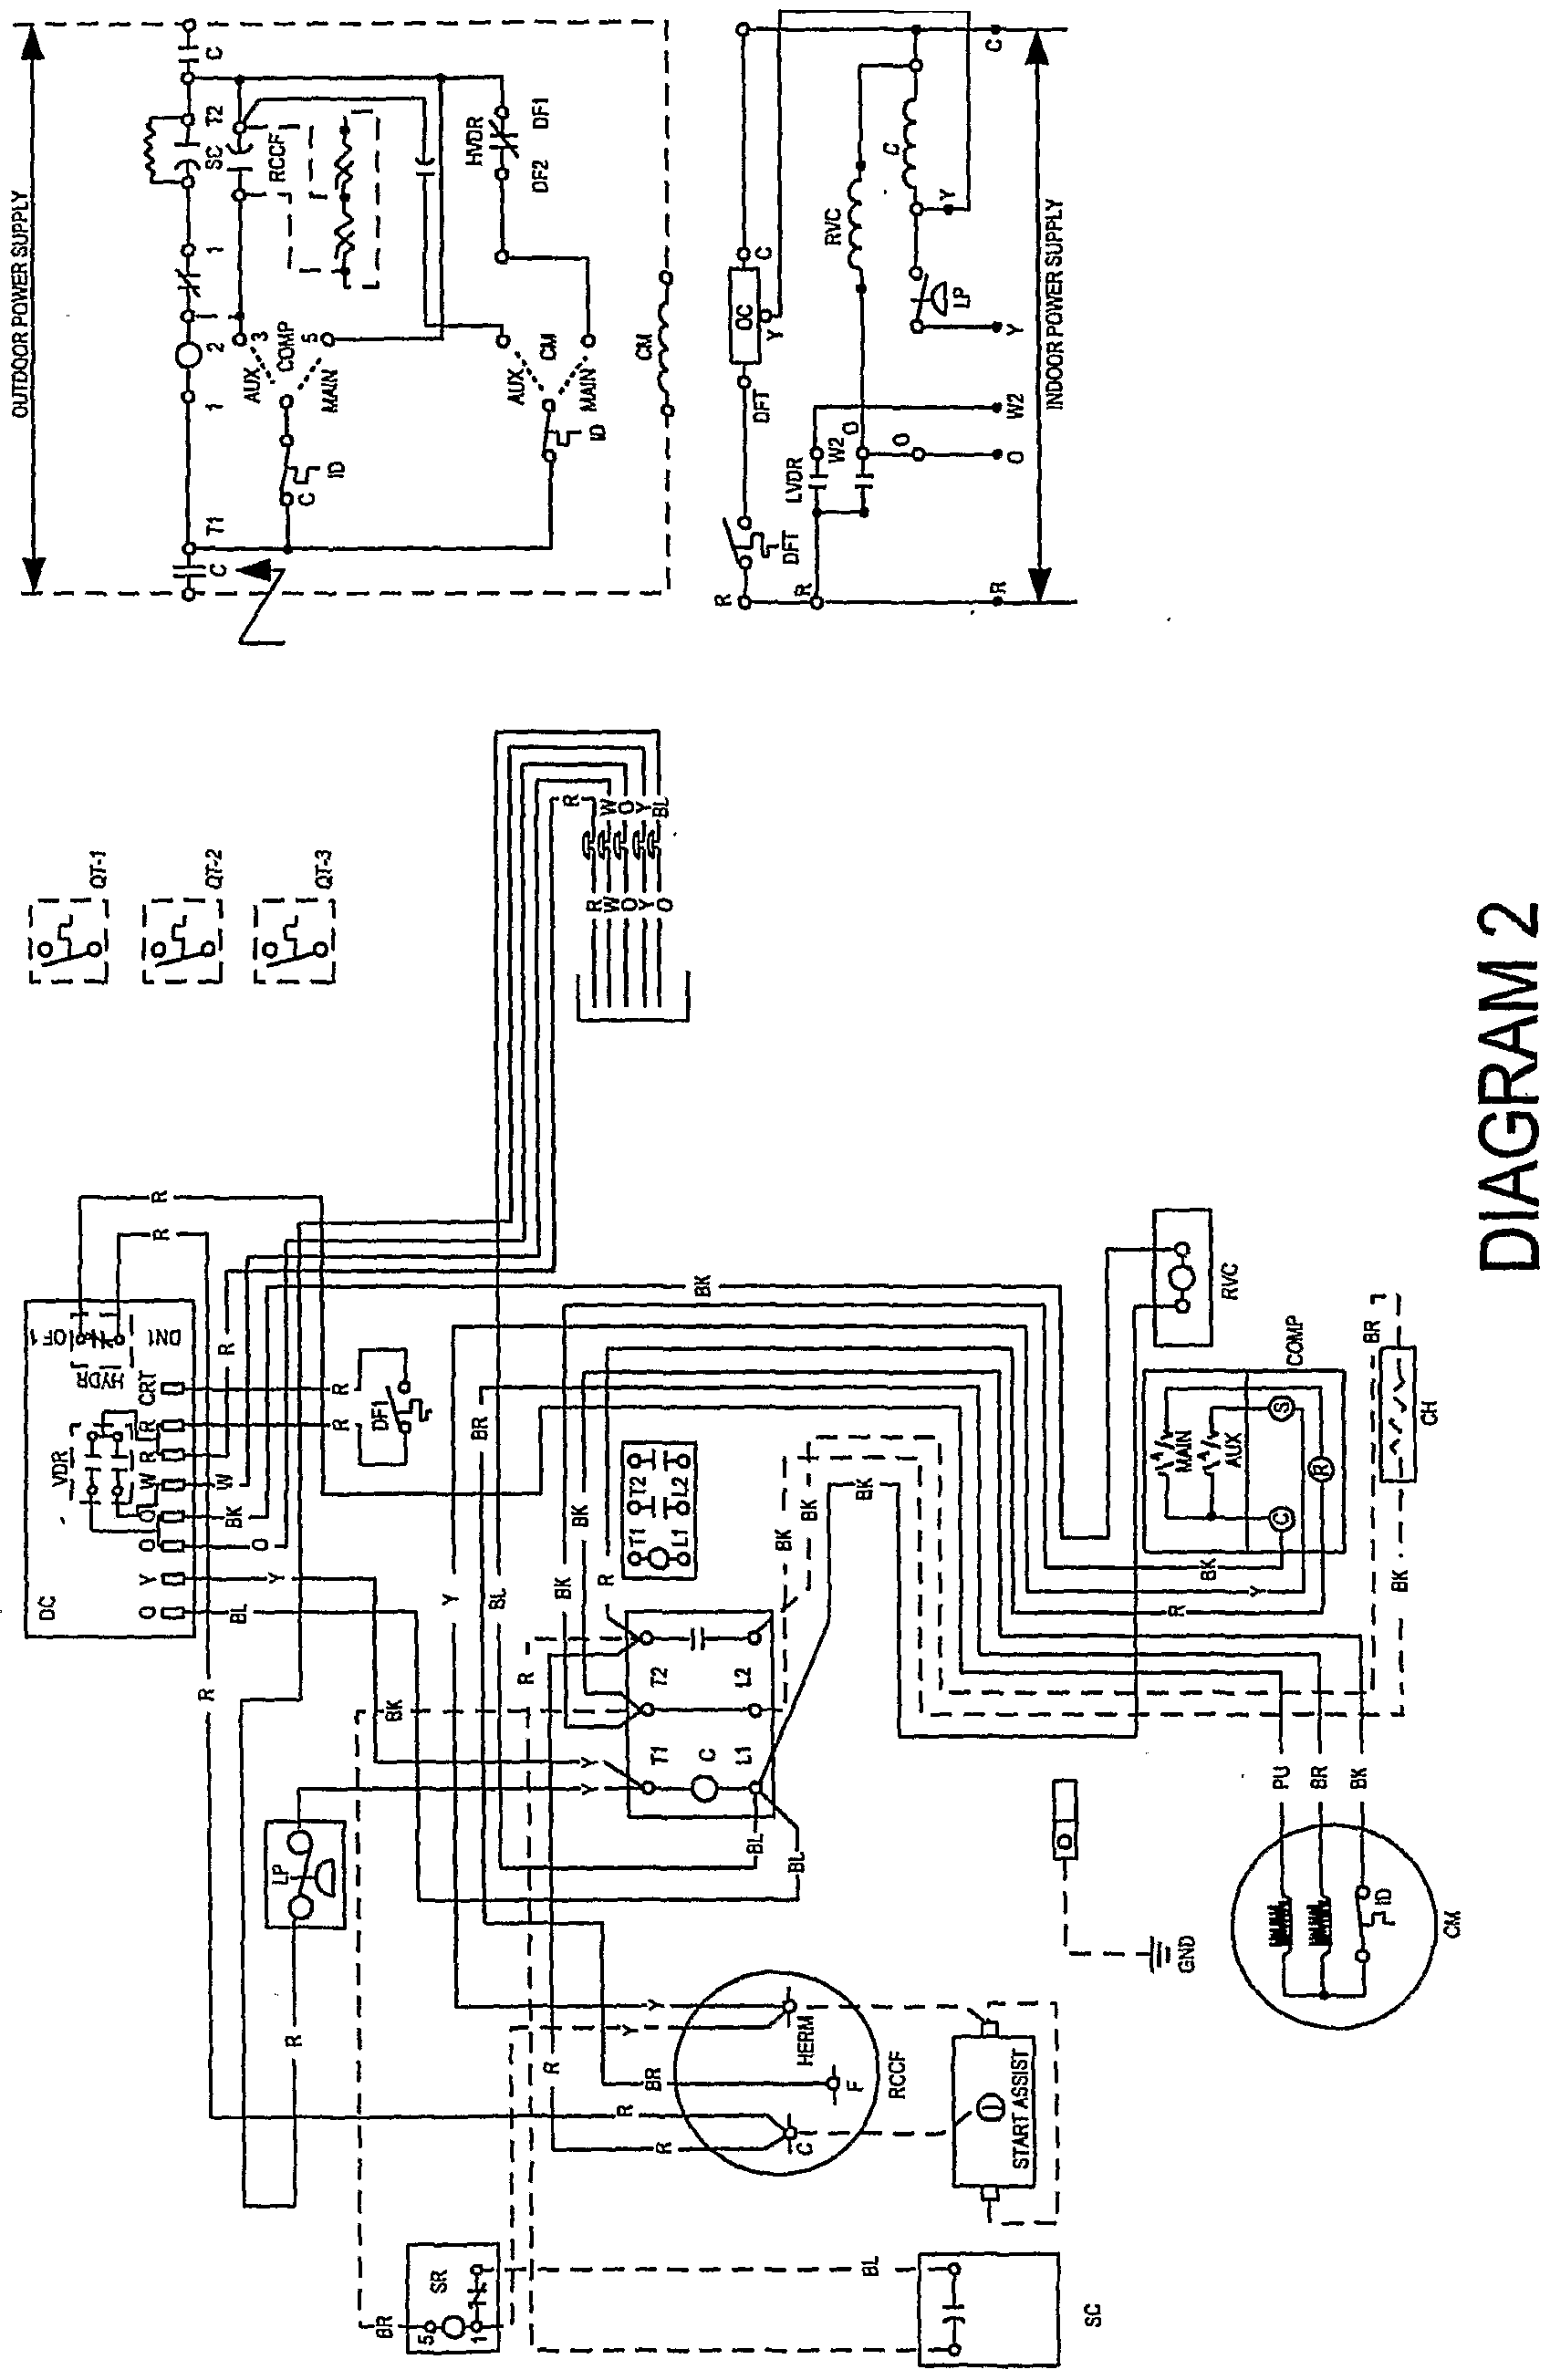 More keywords like Forced Air Heater Wiring Diagram other people like  #3A3A3A